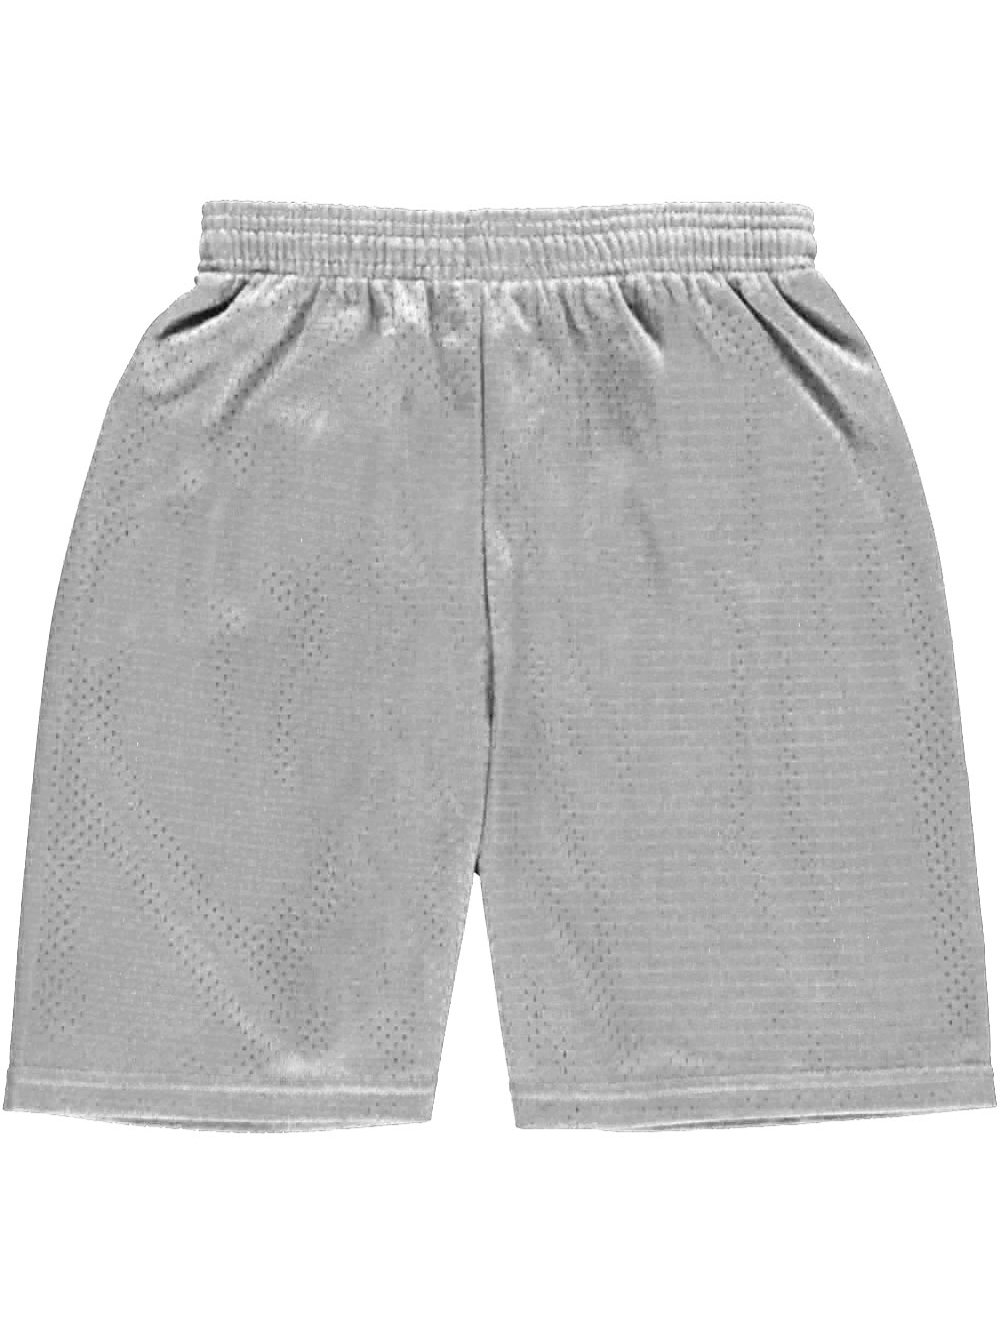 Badger Mesh Unisex Athletic Shorts